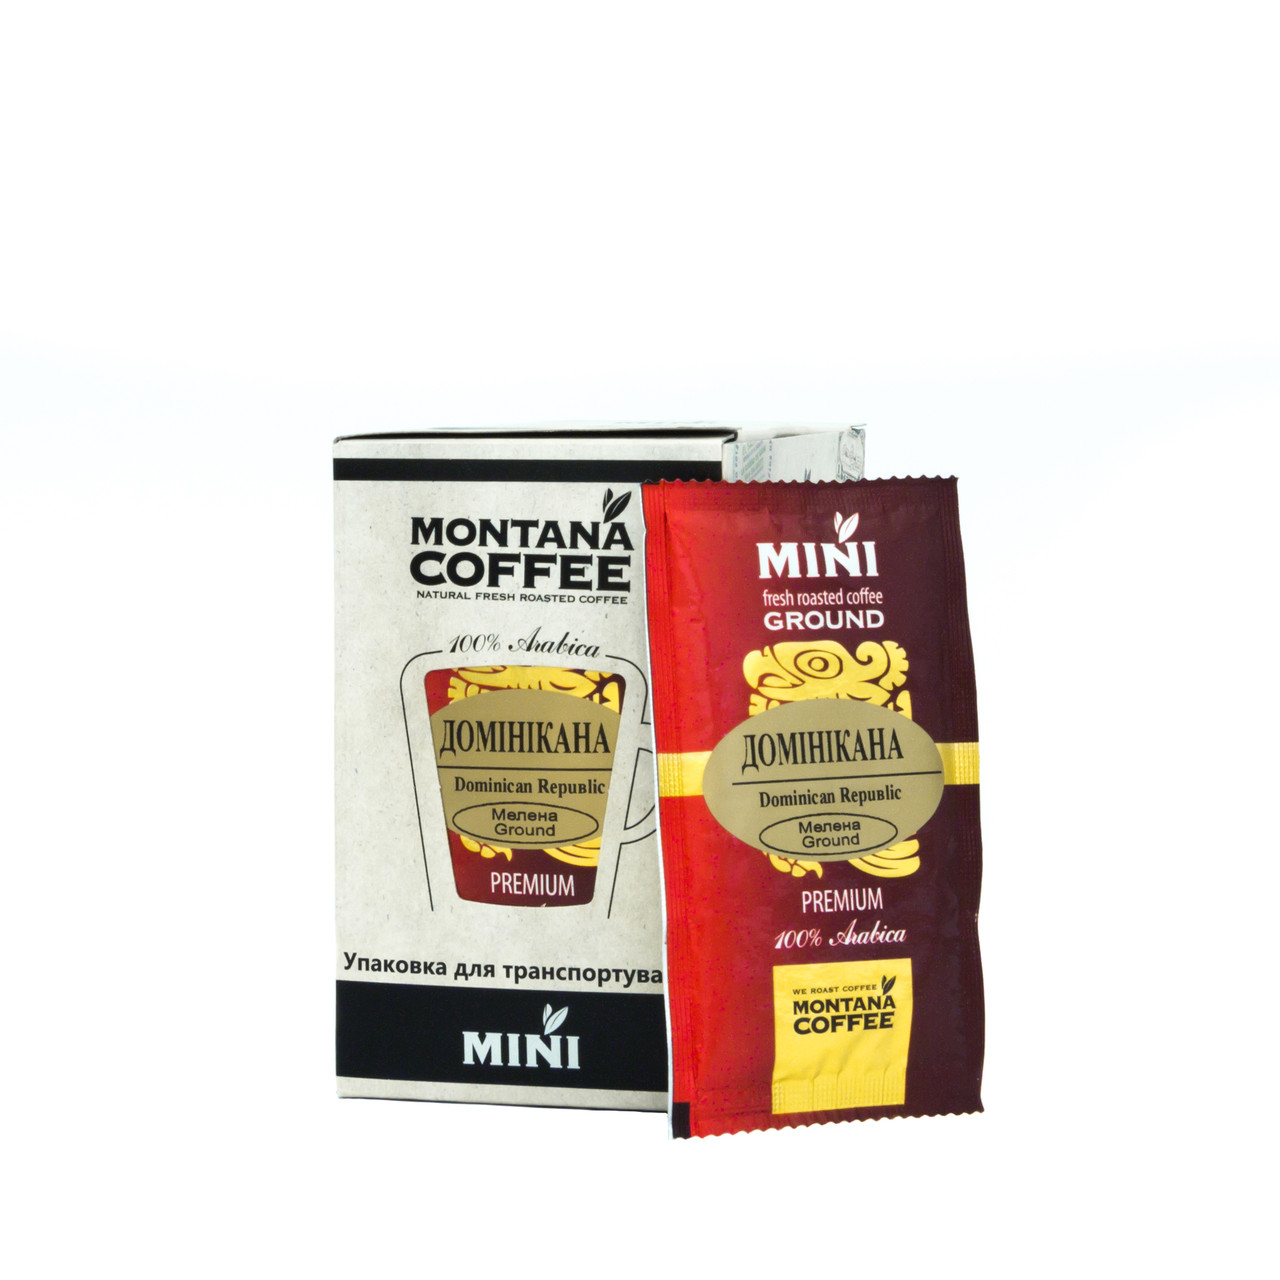 Доминикана Montana coffee MINI 20 шт